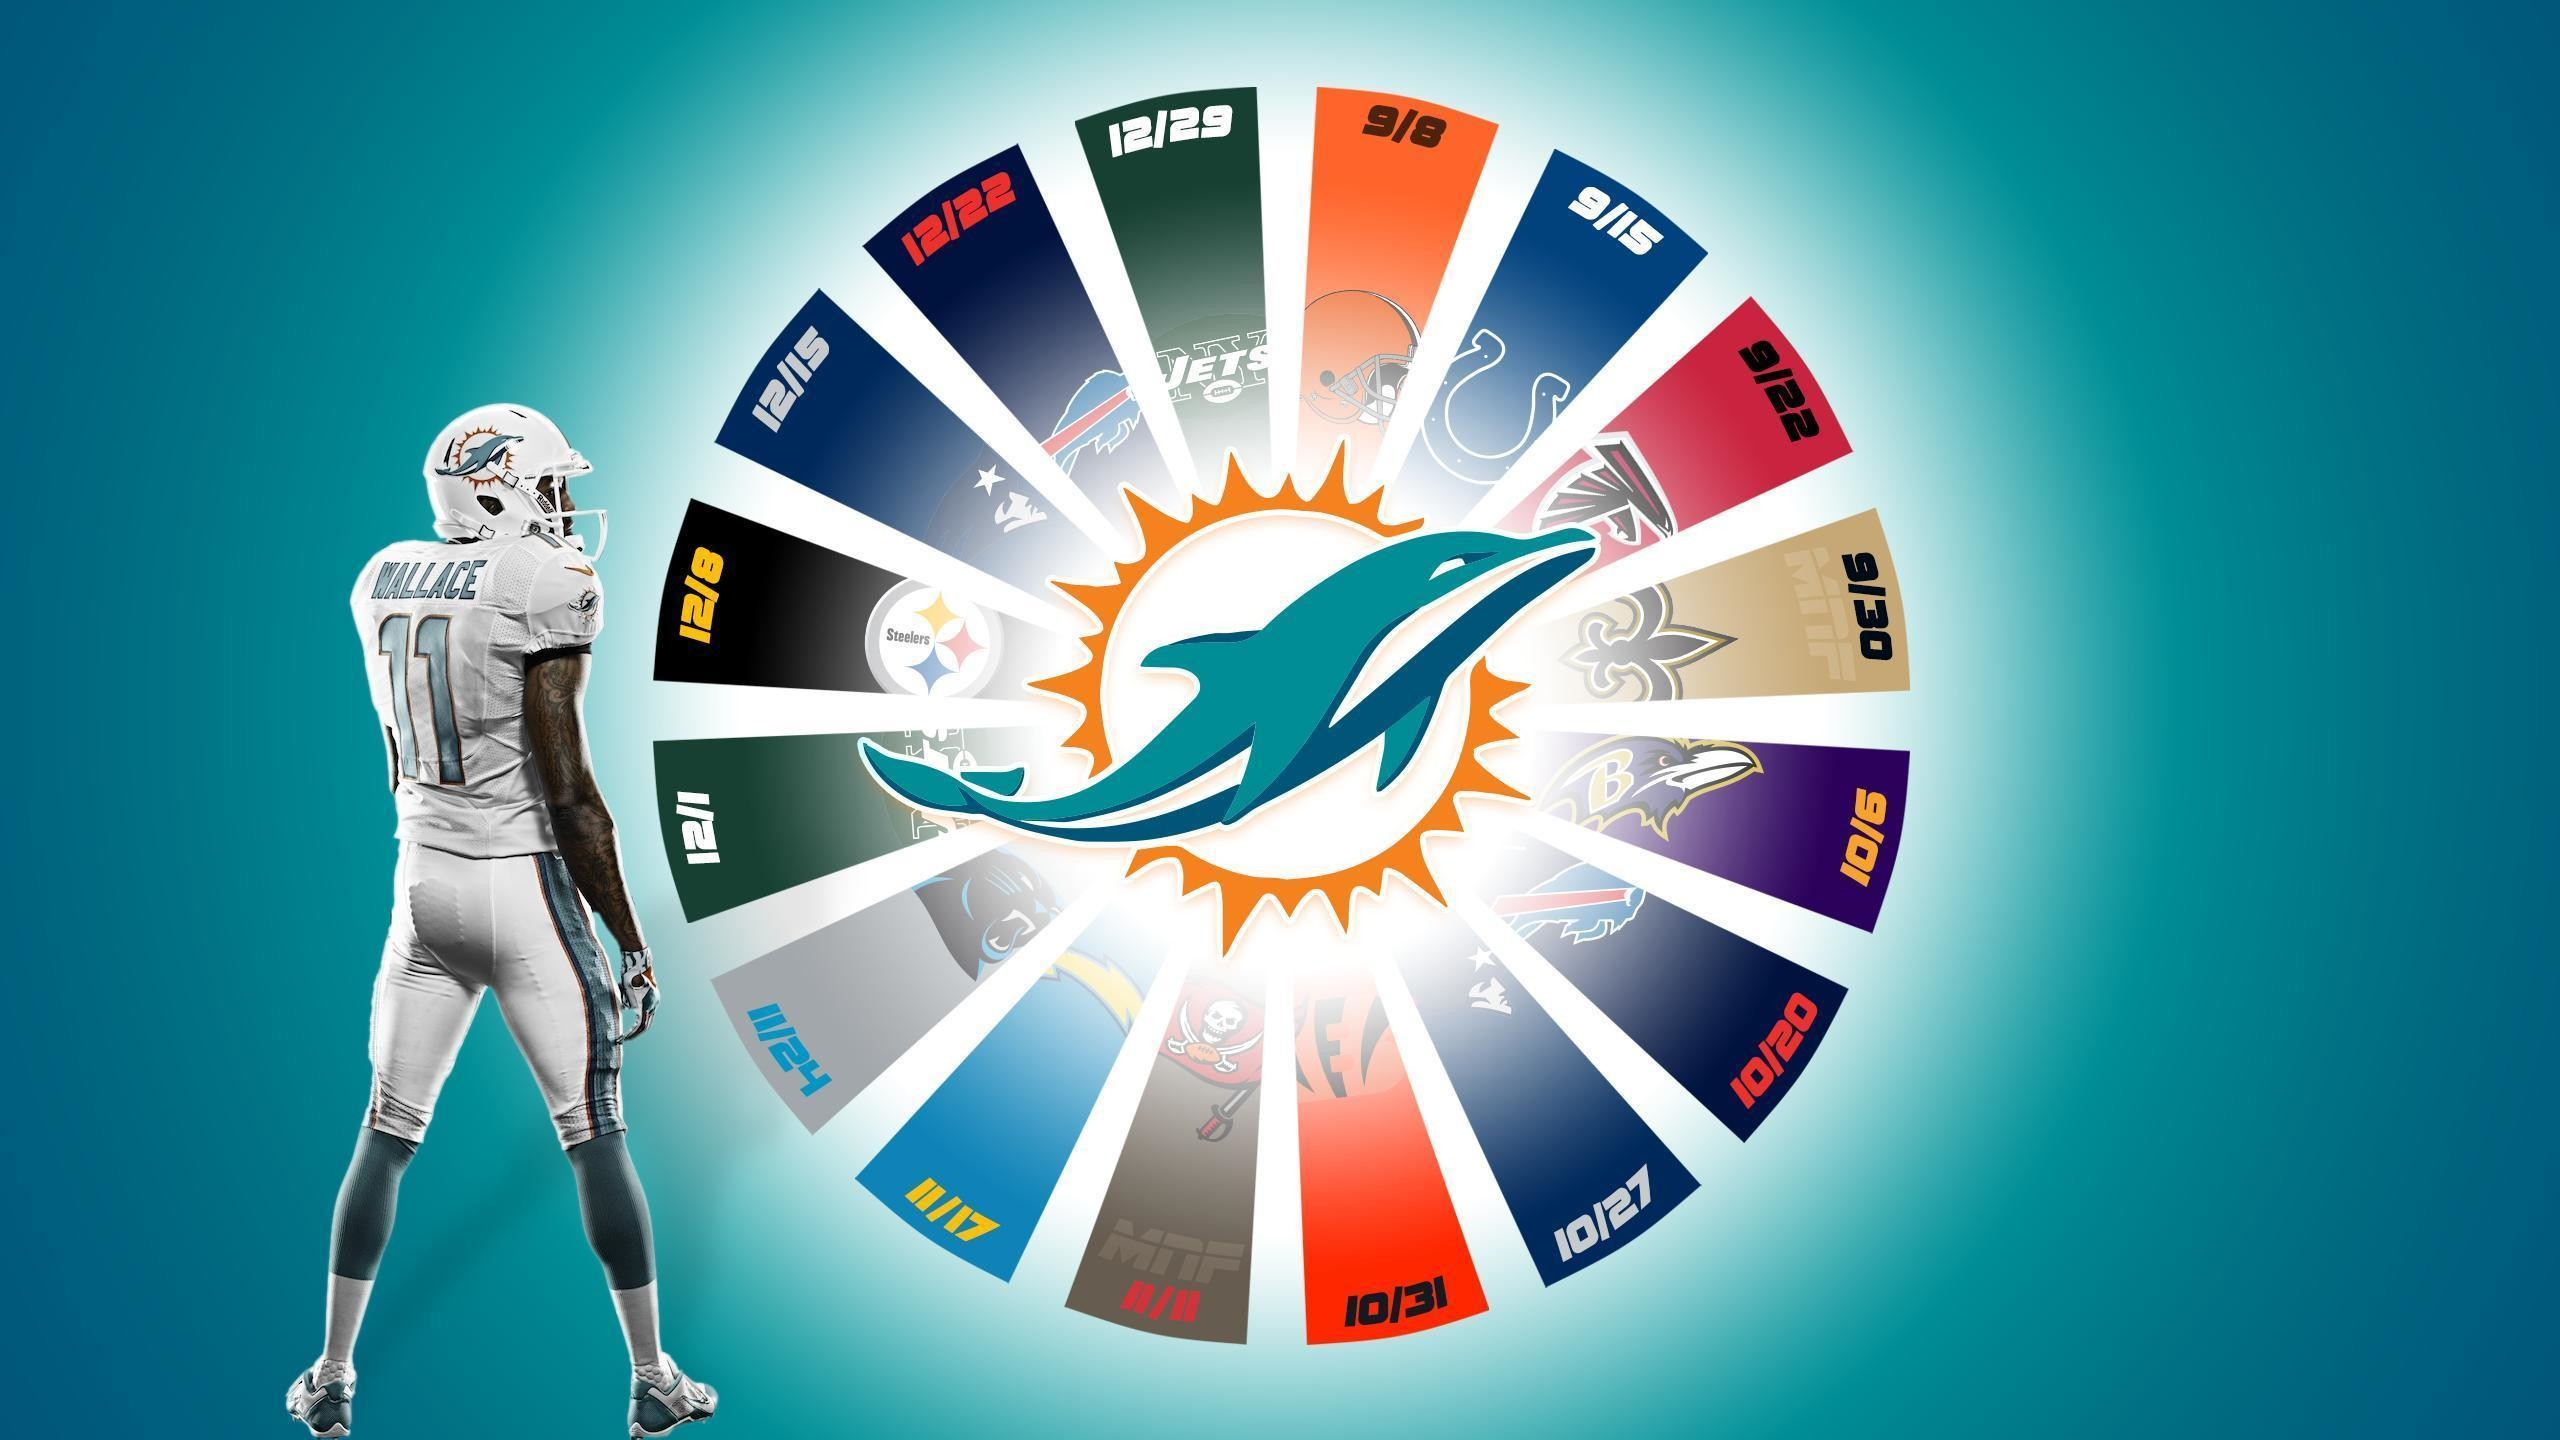 Miami dolphins wallpaper screensavers 71 images - Miami dolphins wallpaper ...